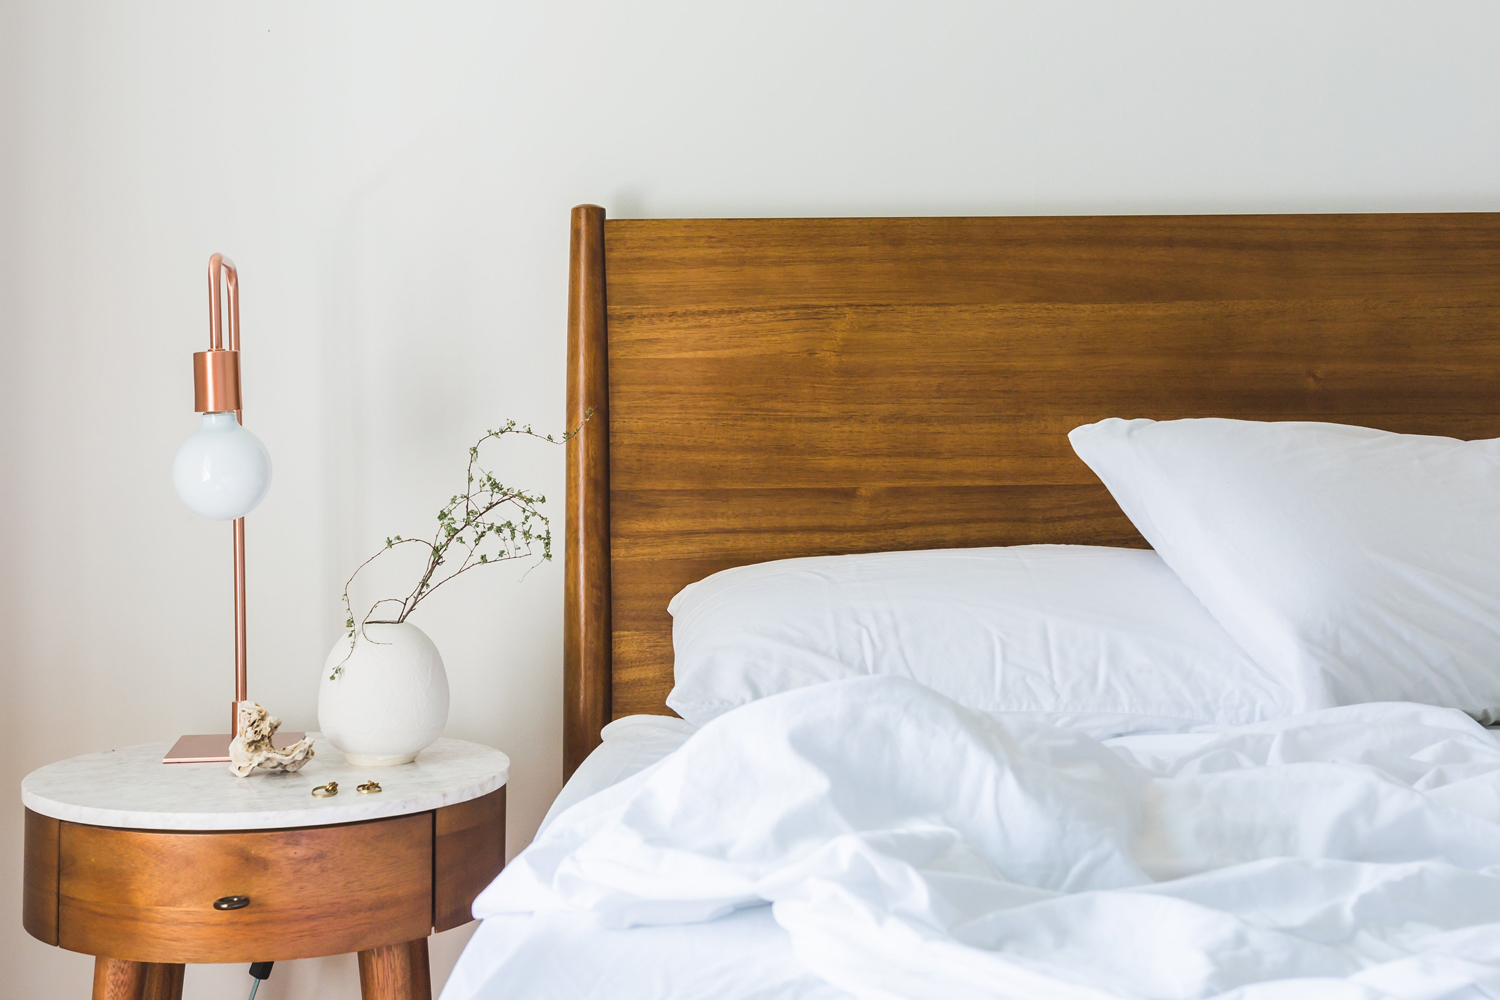 airbnb/stock bed